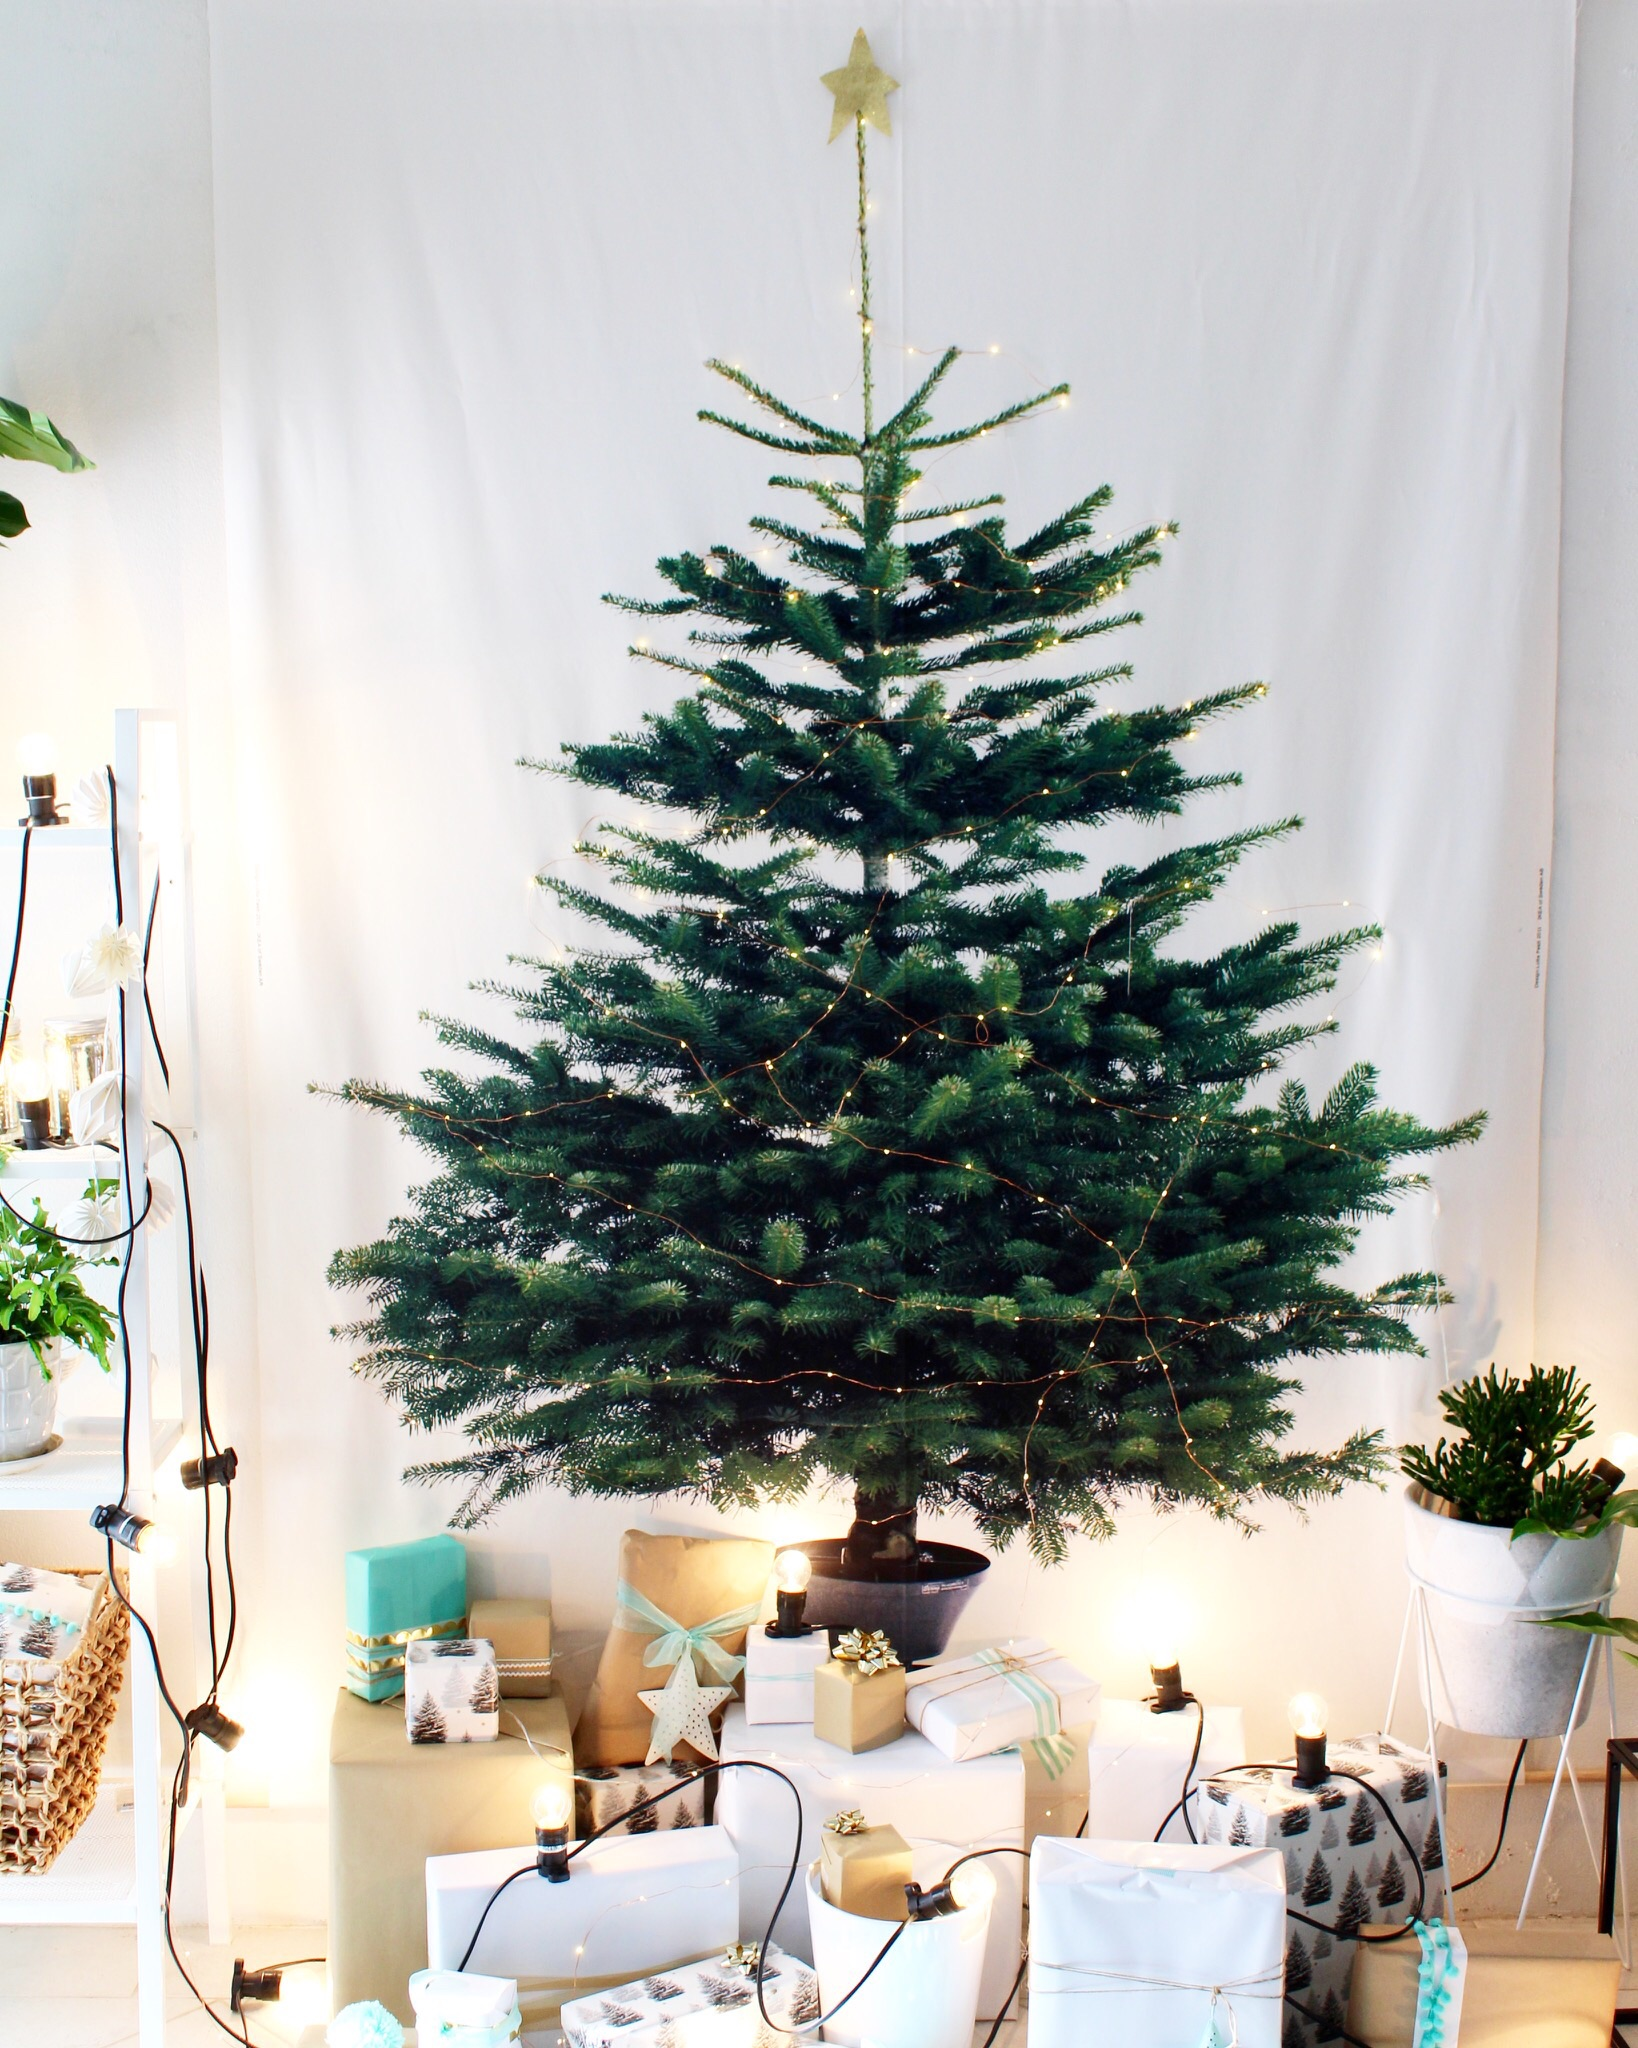 Christmas decoration ideas for small spaces | DIY IKEA tree